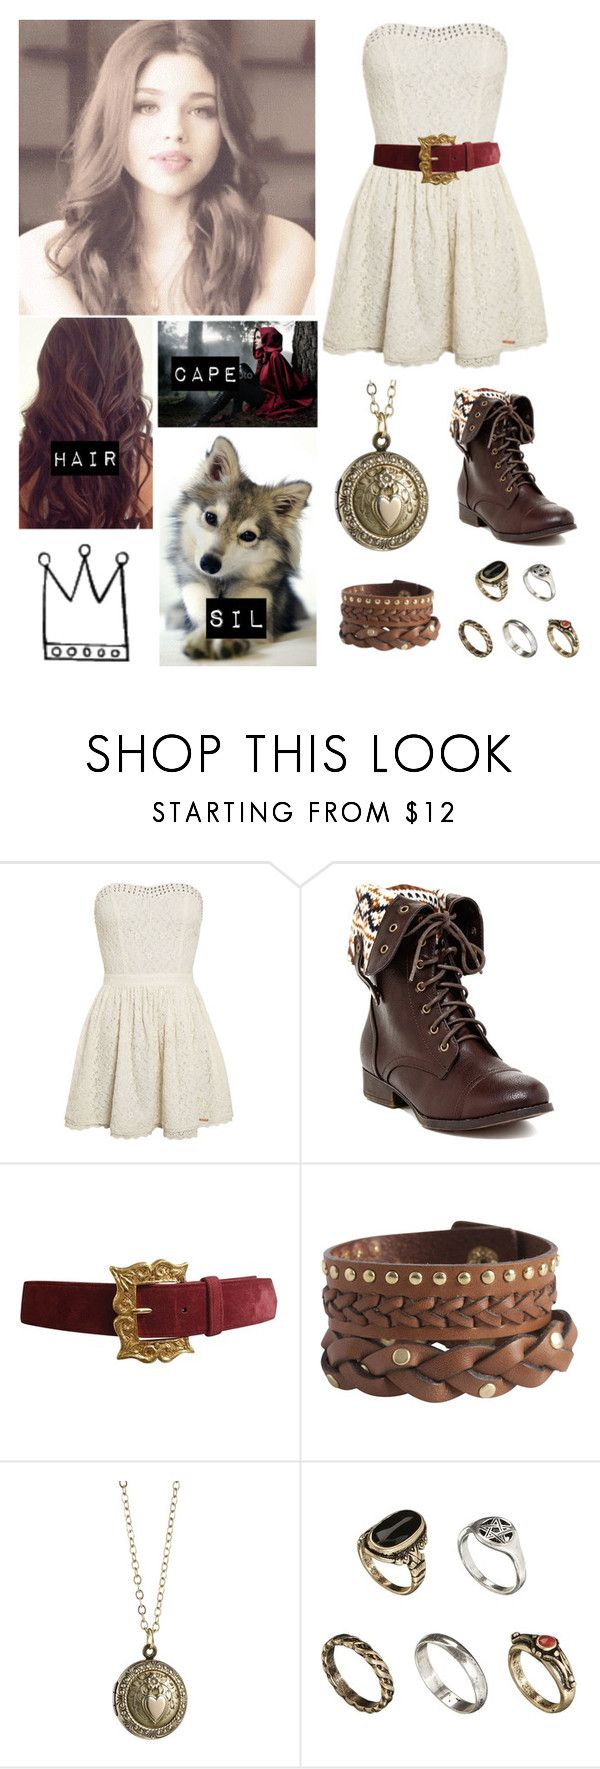 """Willow Hood"" by mikaelsonlegacy ❤ liked on Polyvore featuring Superdry, Christian Lacroix, Pieces, Alexis Bittar, ASOS, disney, OC, fanfiction, Descendants and willowhood"